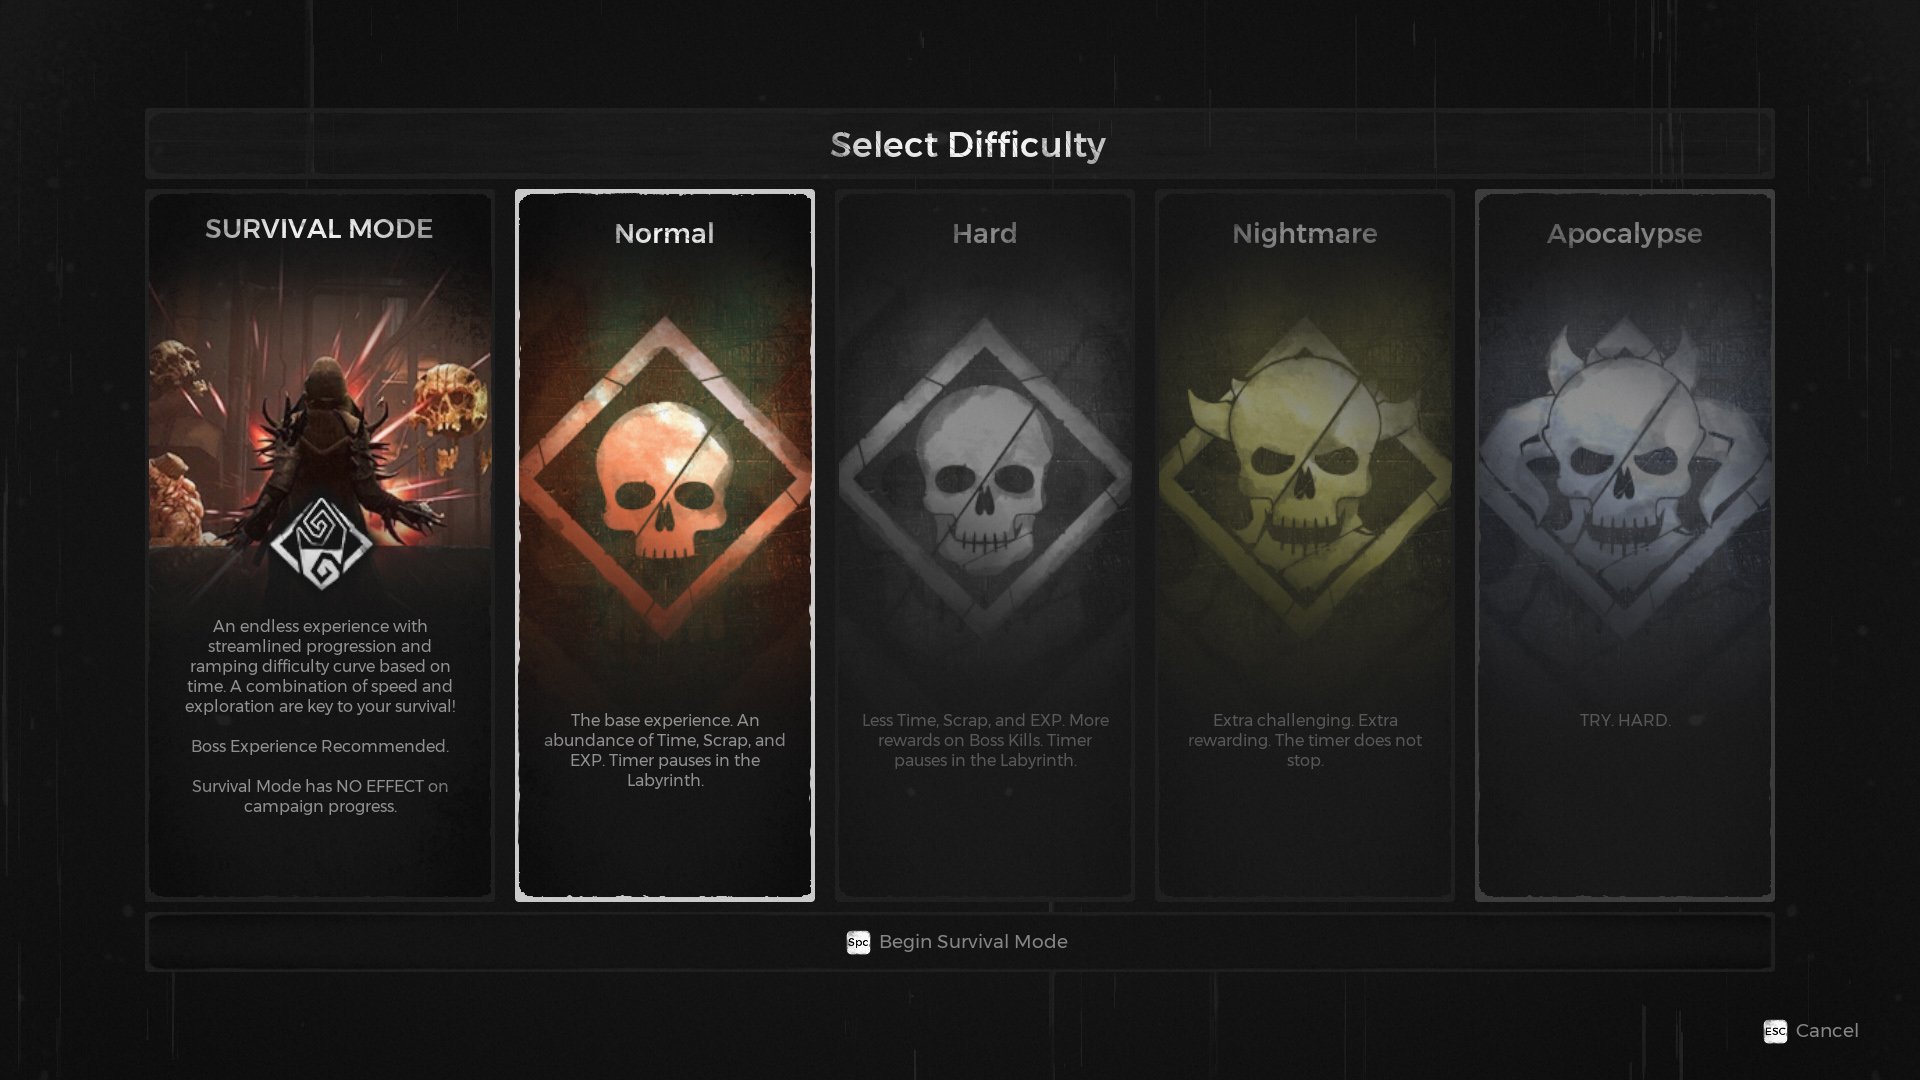 Remnant Survival Mode difficulties